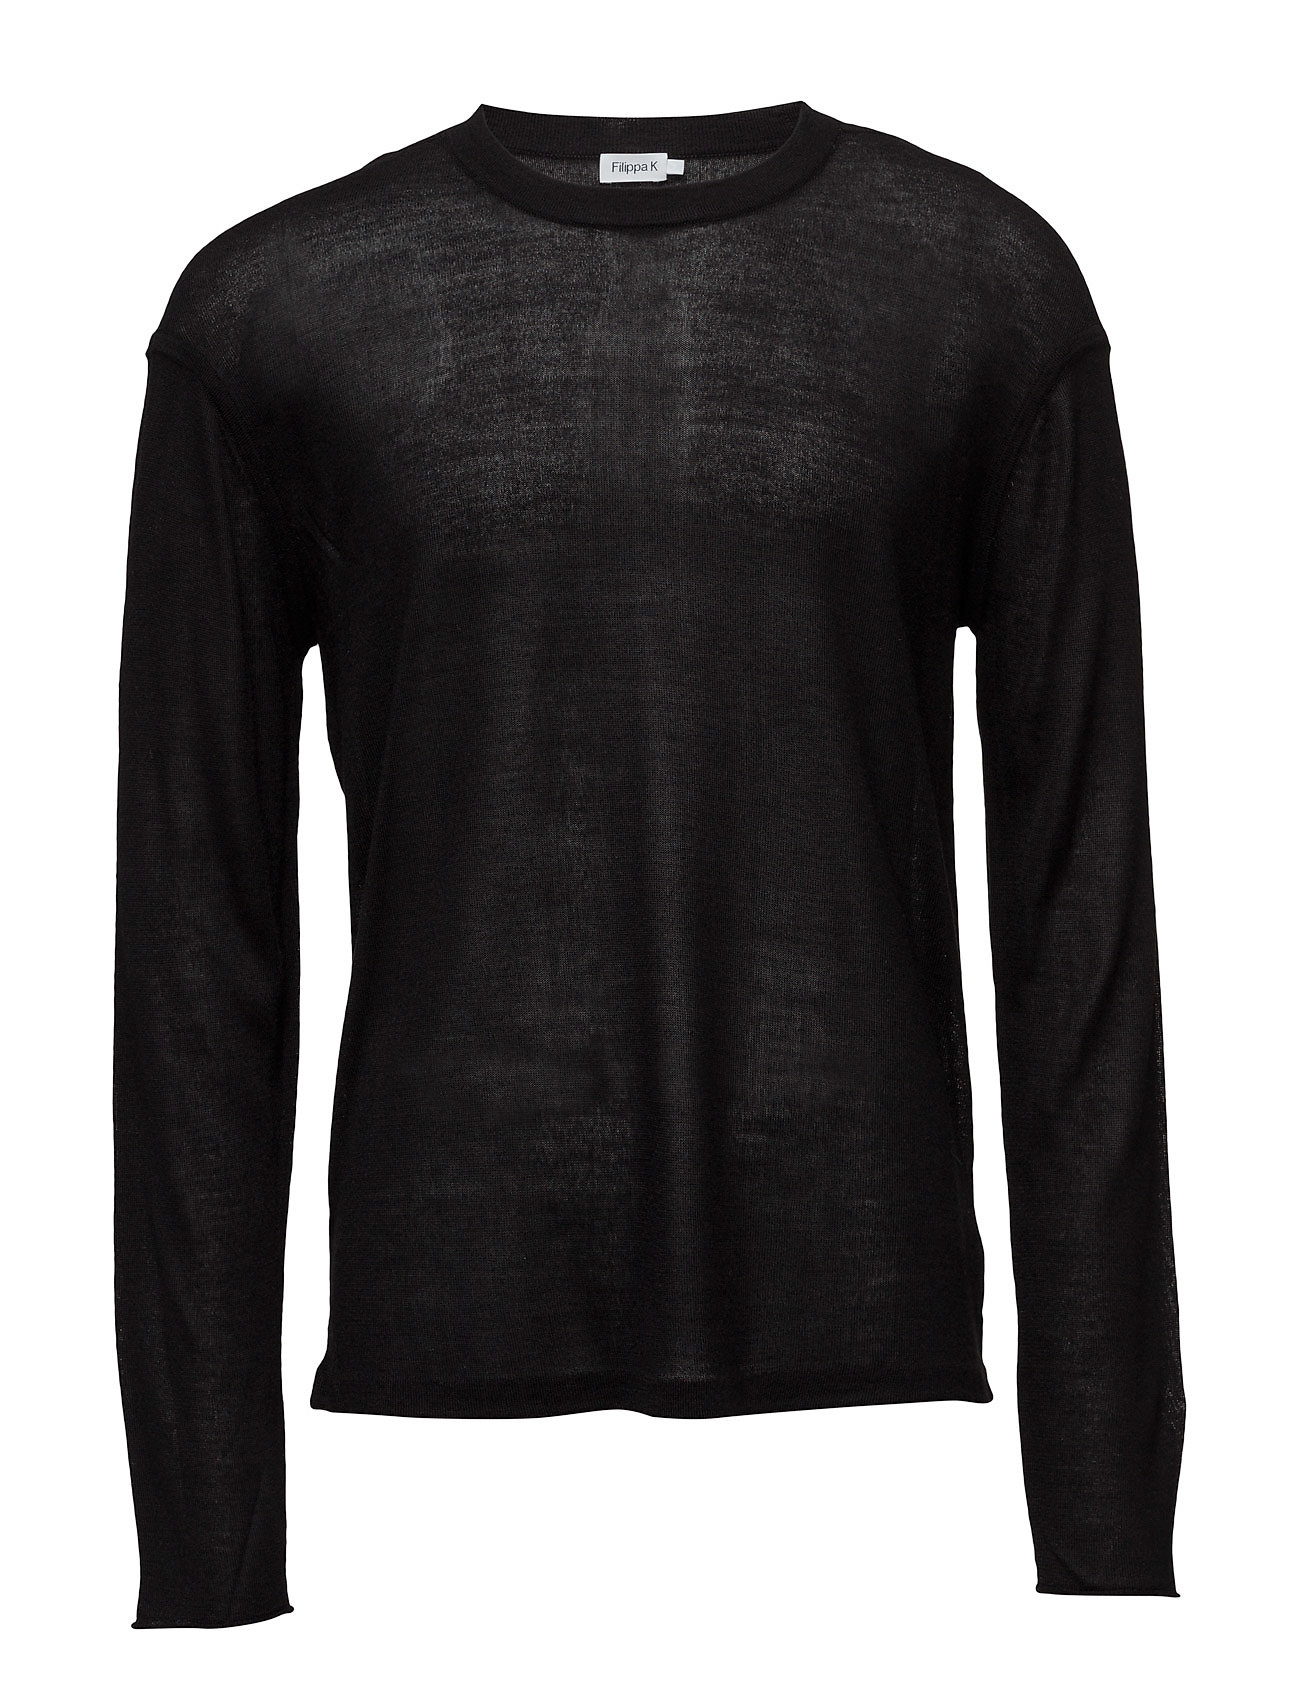 M. Relaxed Light Knit Sweater Filippa K Rundhalsede til Herrer i Sort